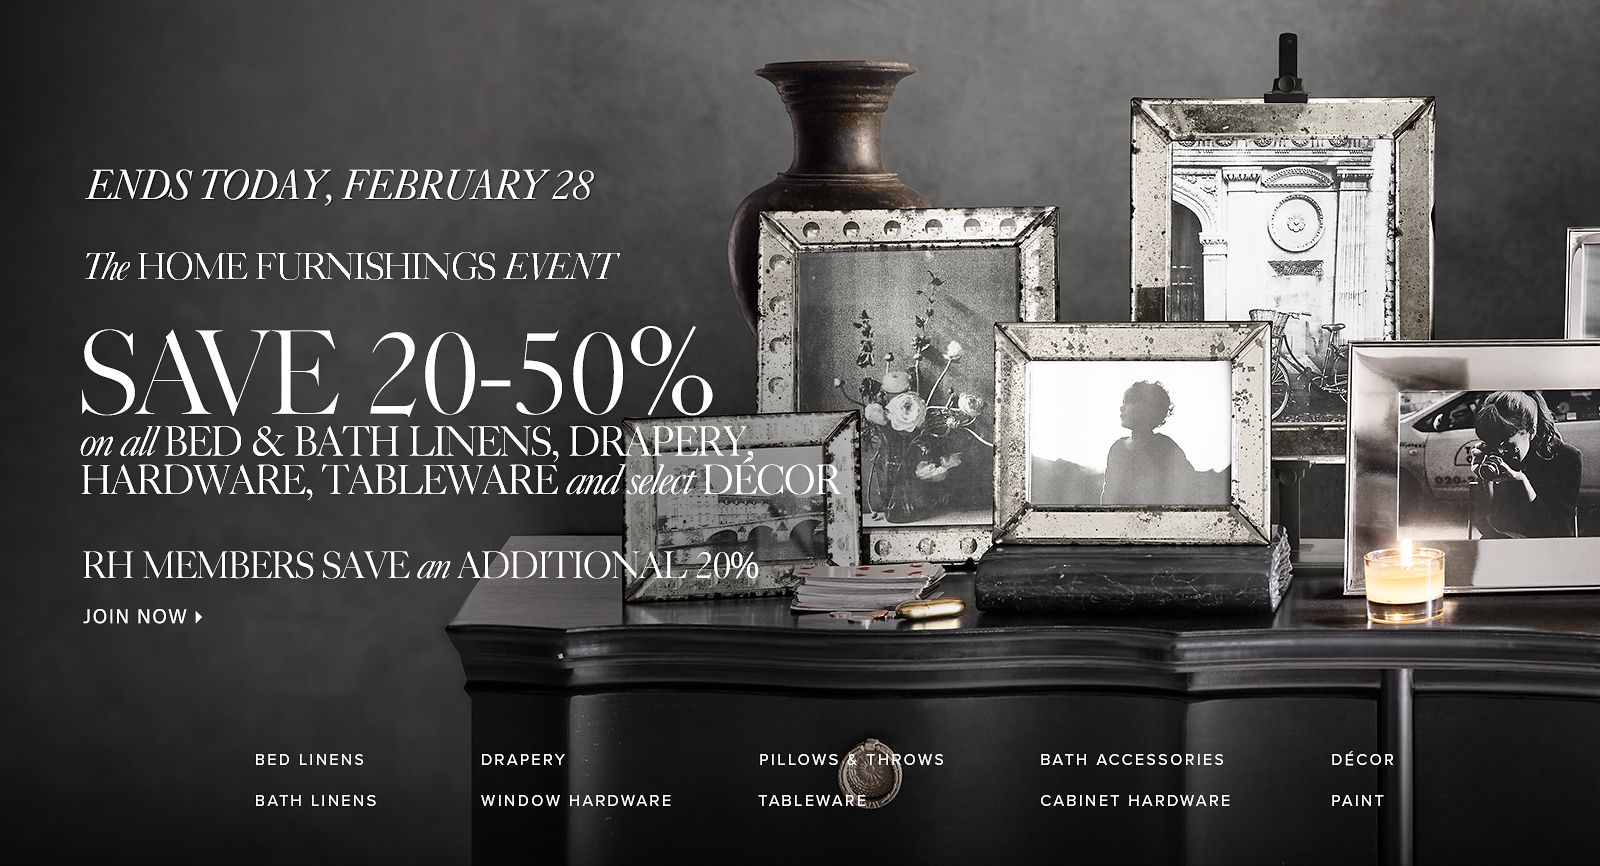 The Home Furnishings Event - Save 20-50%